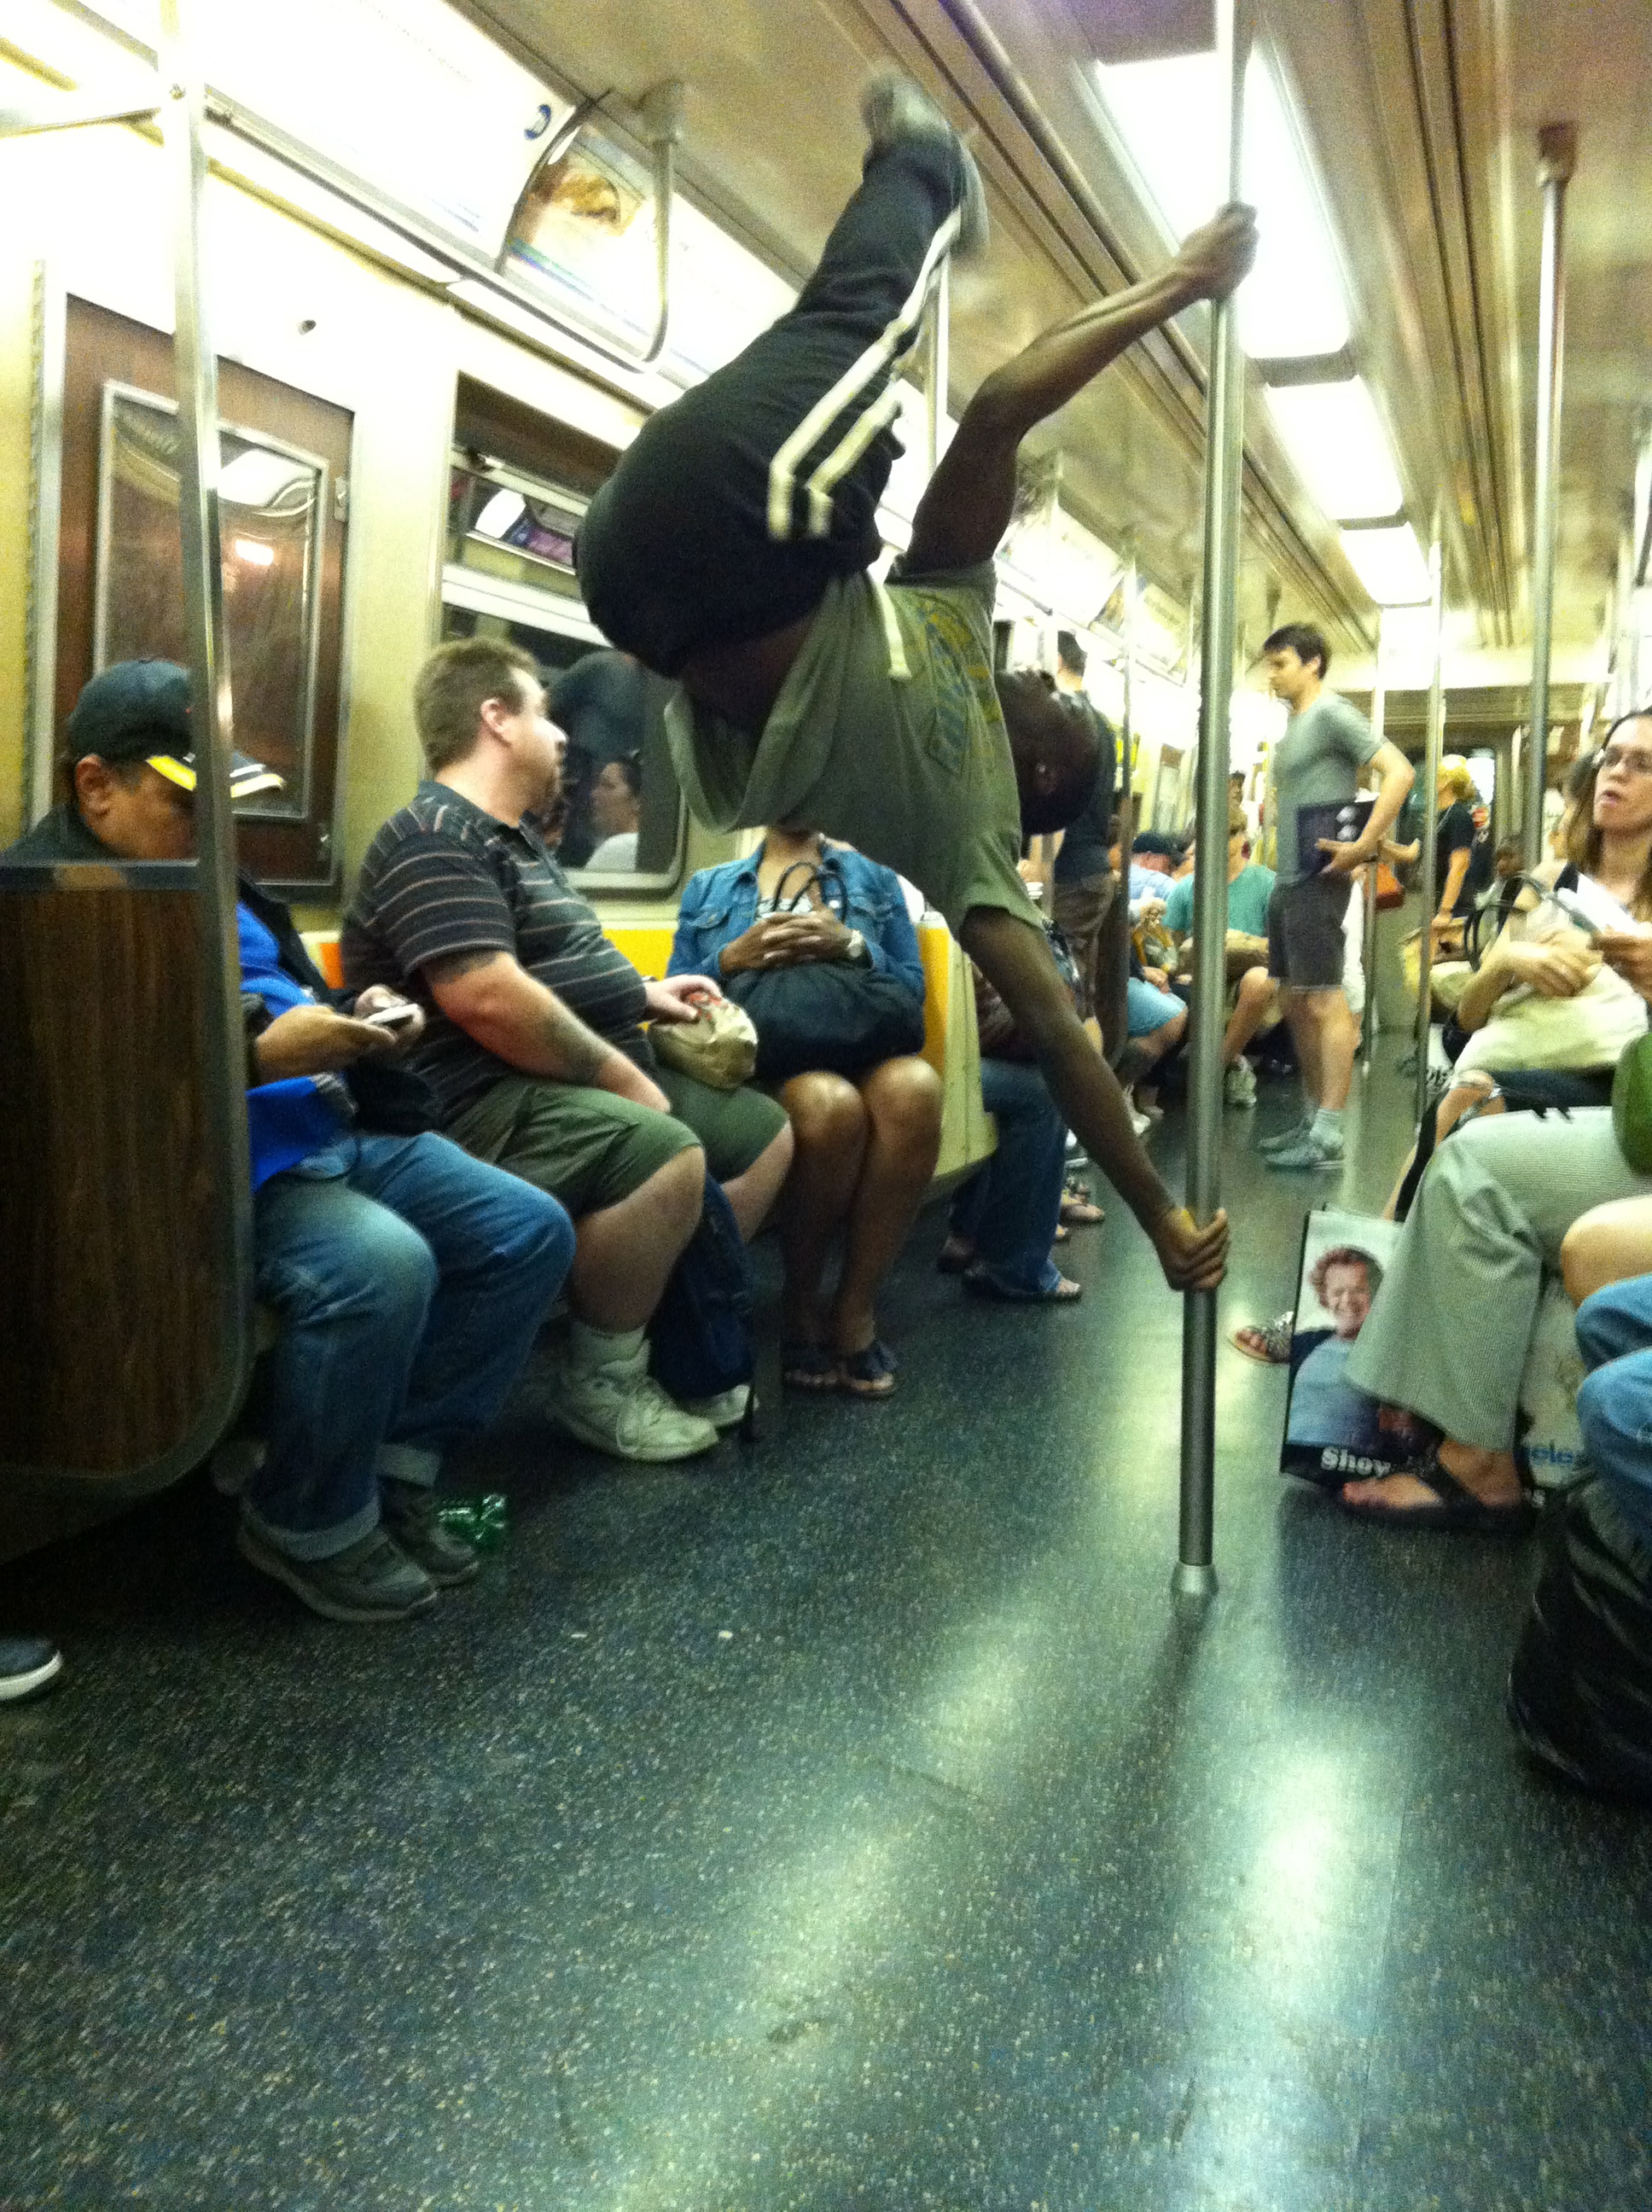 A day in the life: Street dancing on the subway